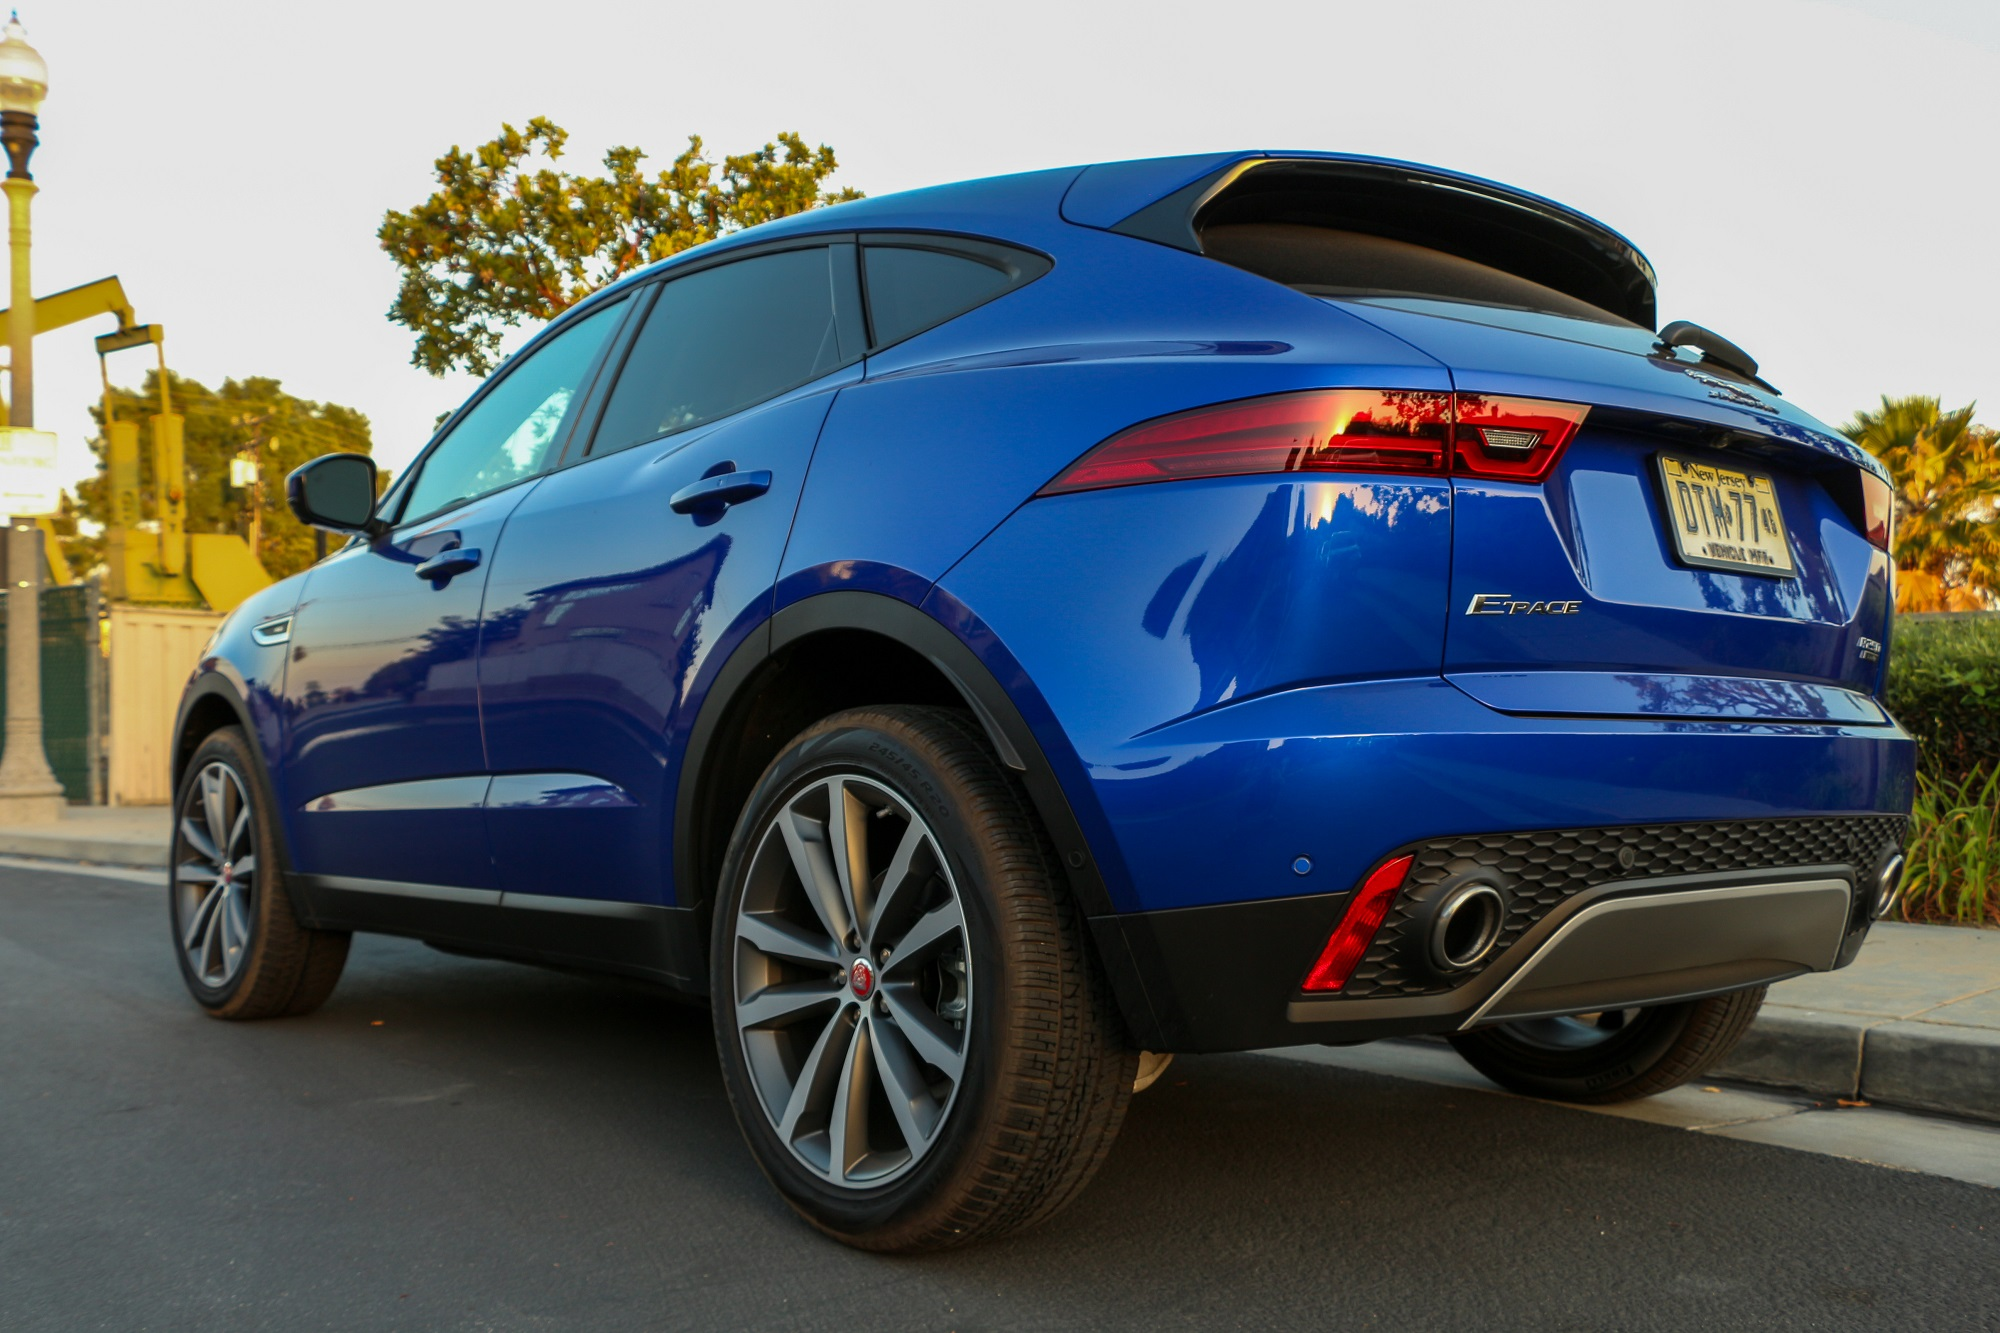 Jaguarforums.com Jaguar E-PACE SE P250 AWD Ask Me Anything Interior Exterior Engine